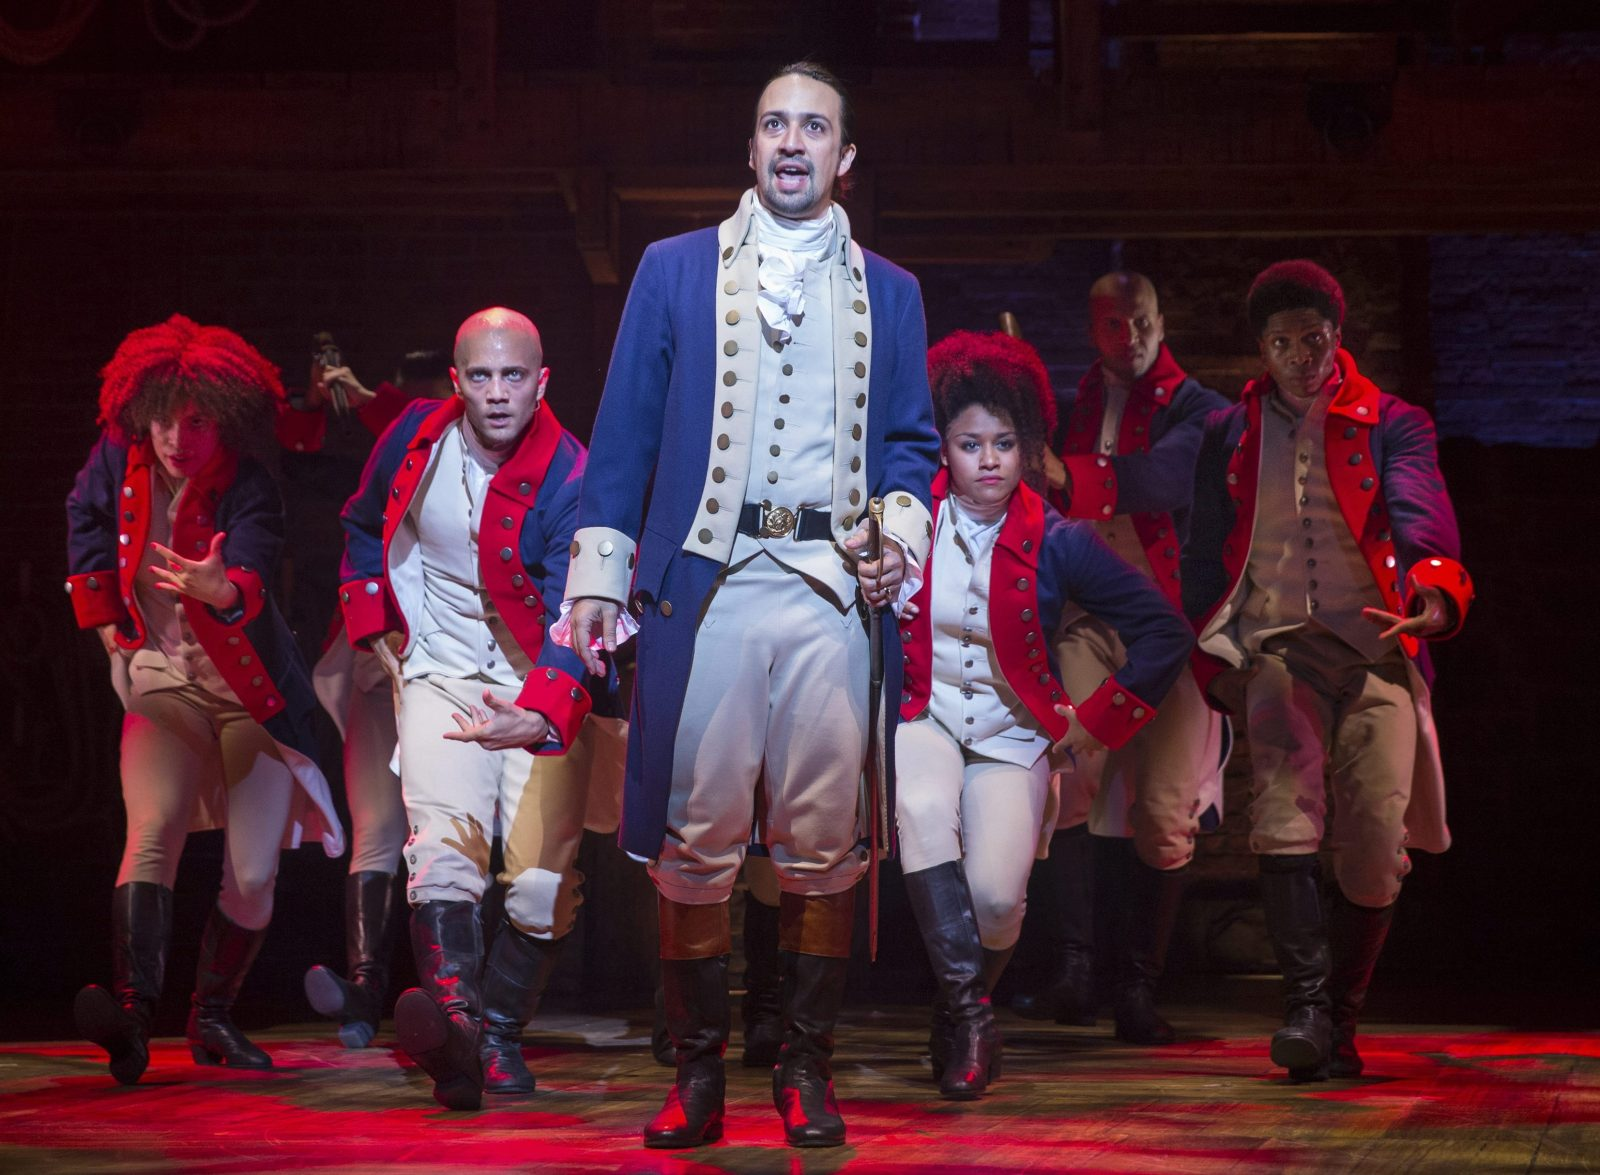 The award-winning musical 'Hamilton' will be at Shea's Buffalo Theatre in November.